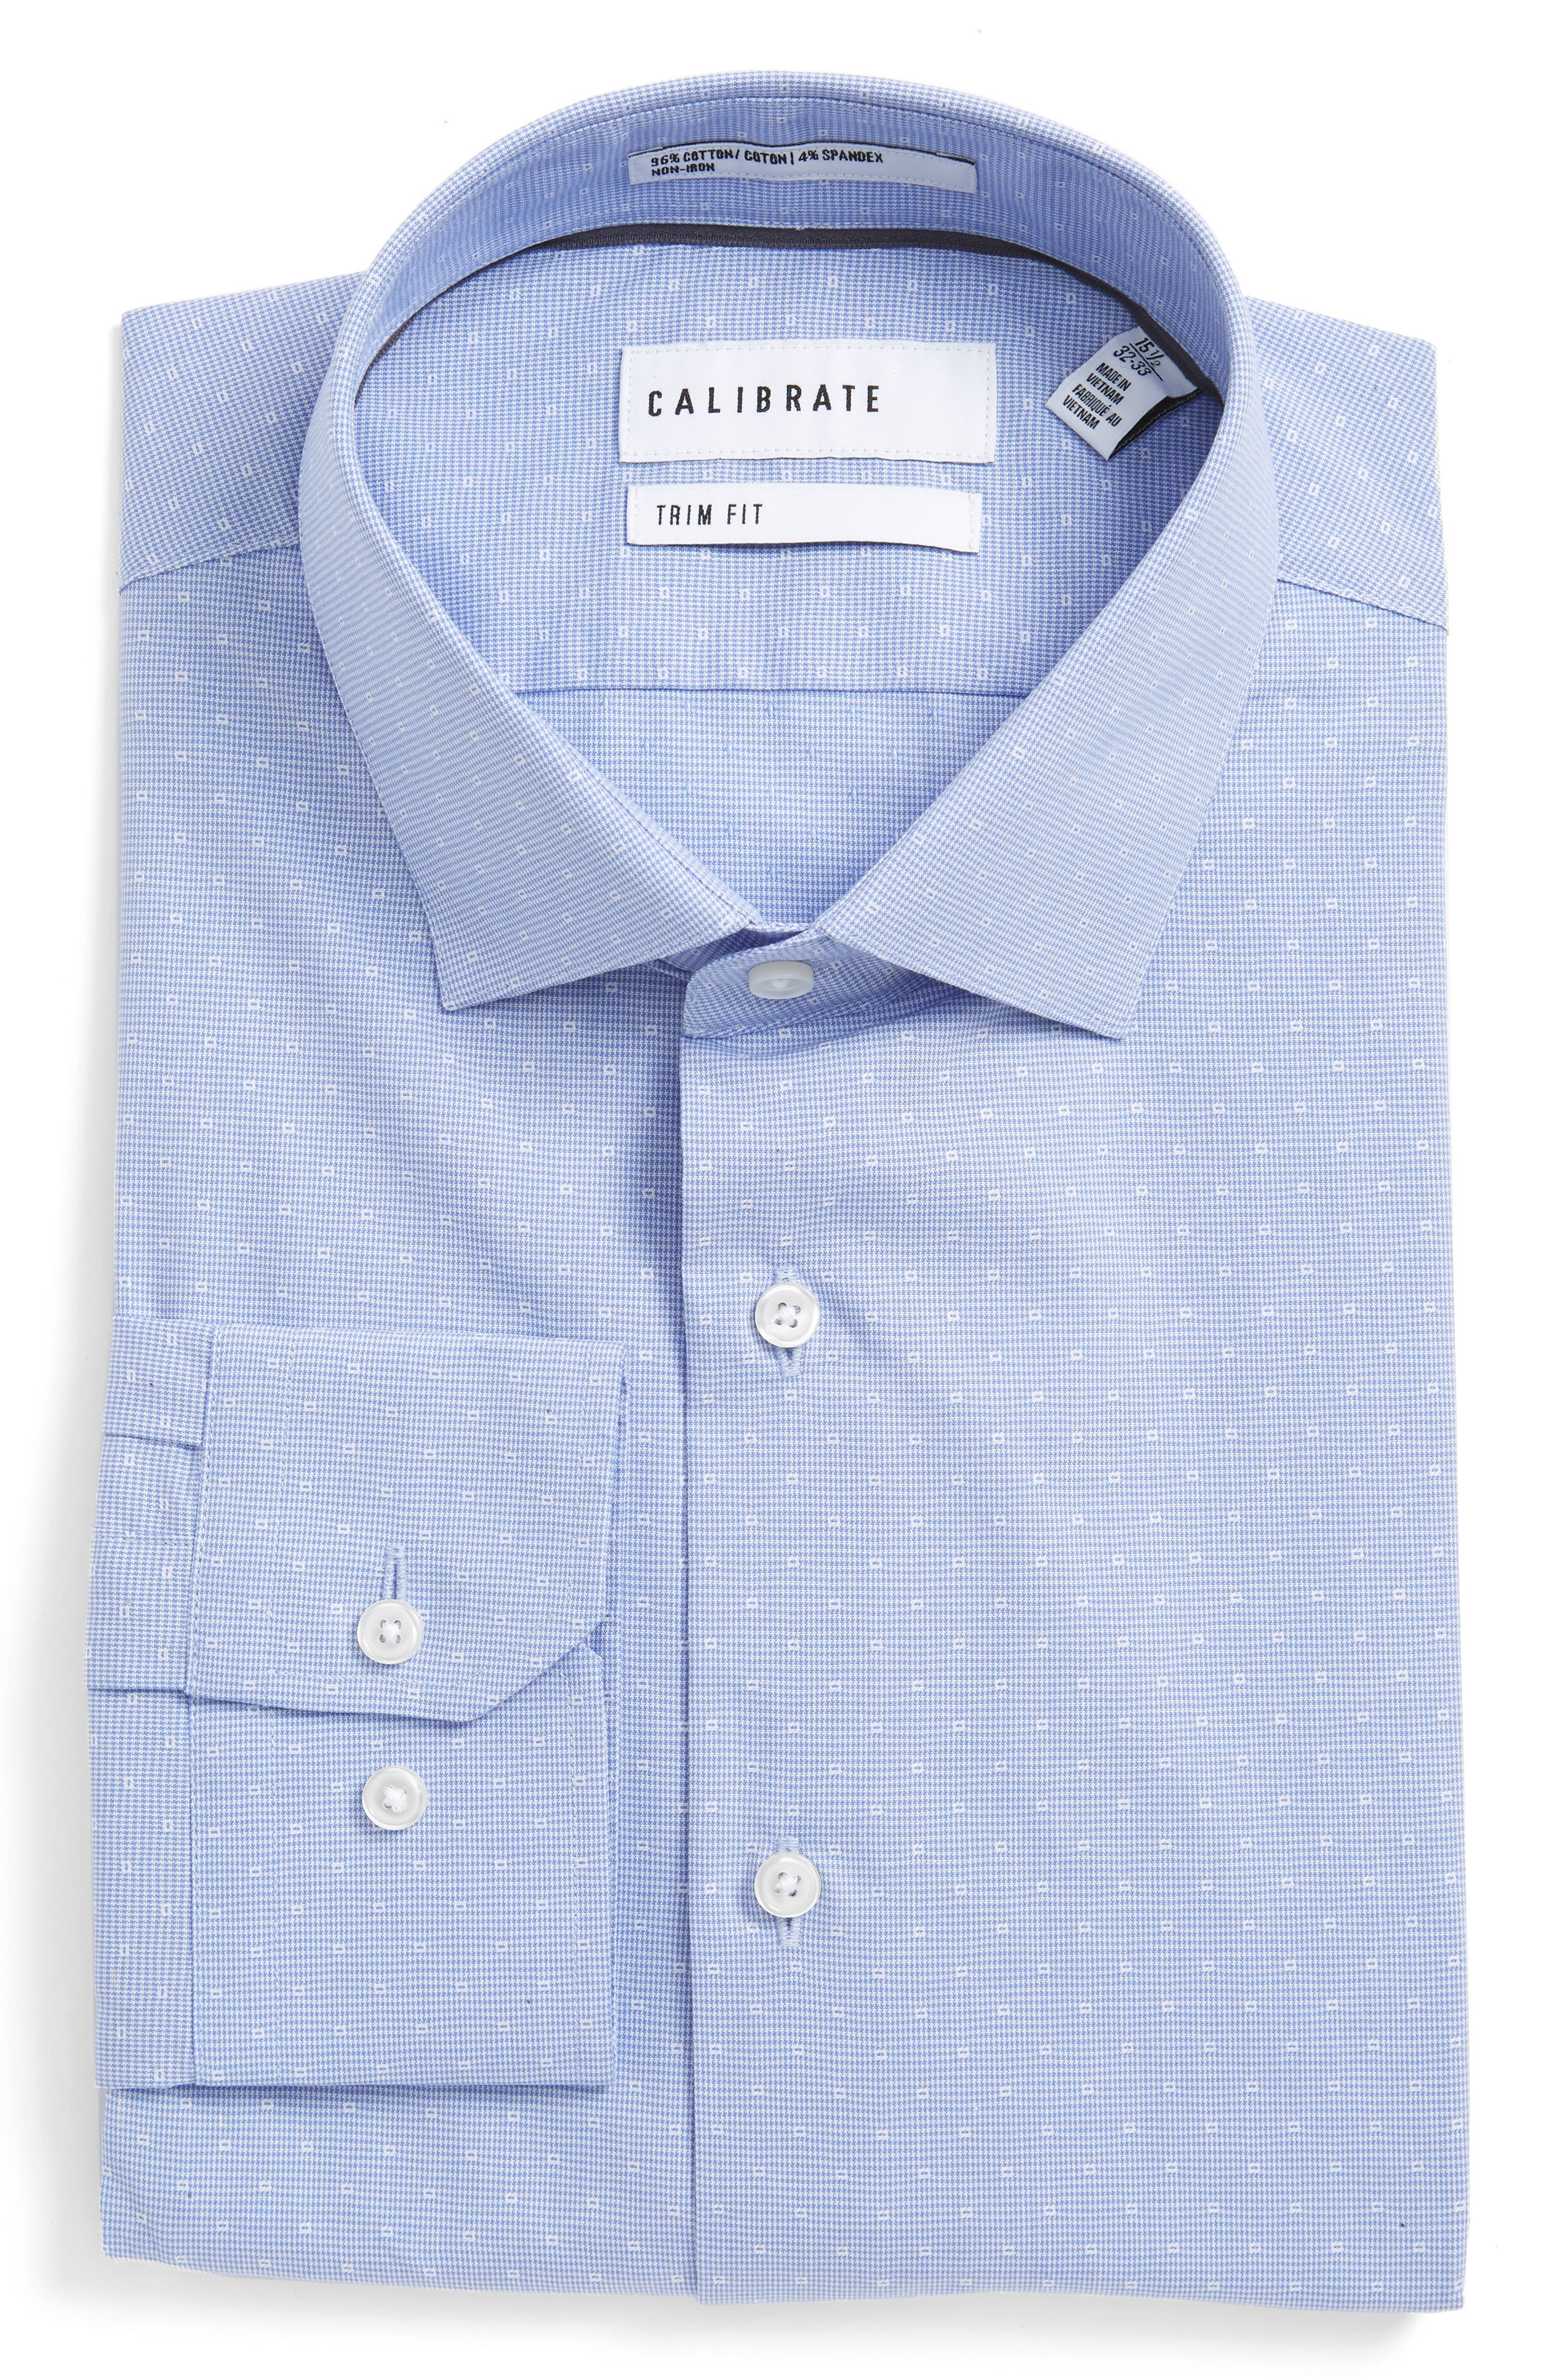 CALIBRATE Trim Fit Non-Iron Stretch Houndstooth Dress Shirt